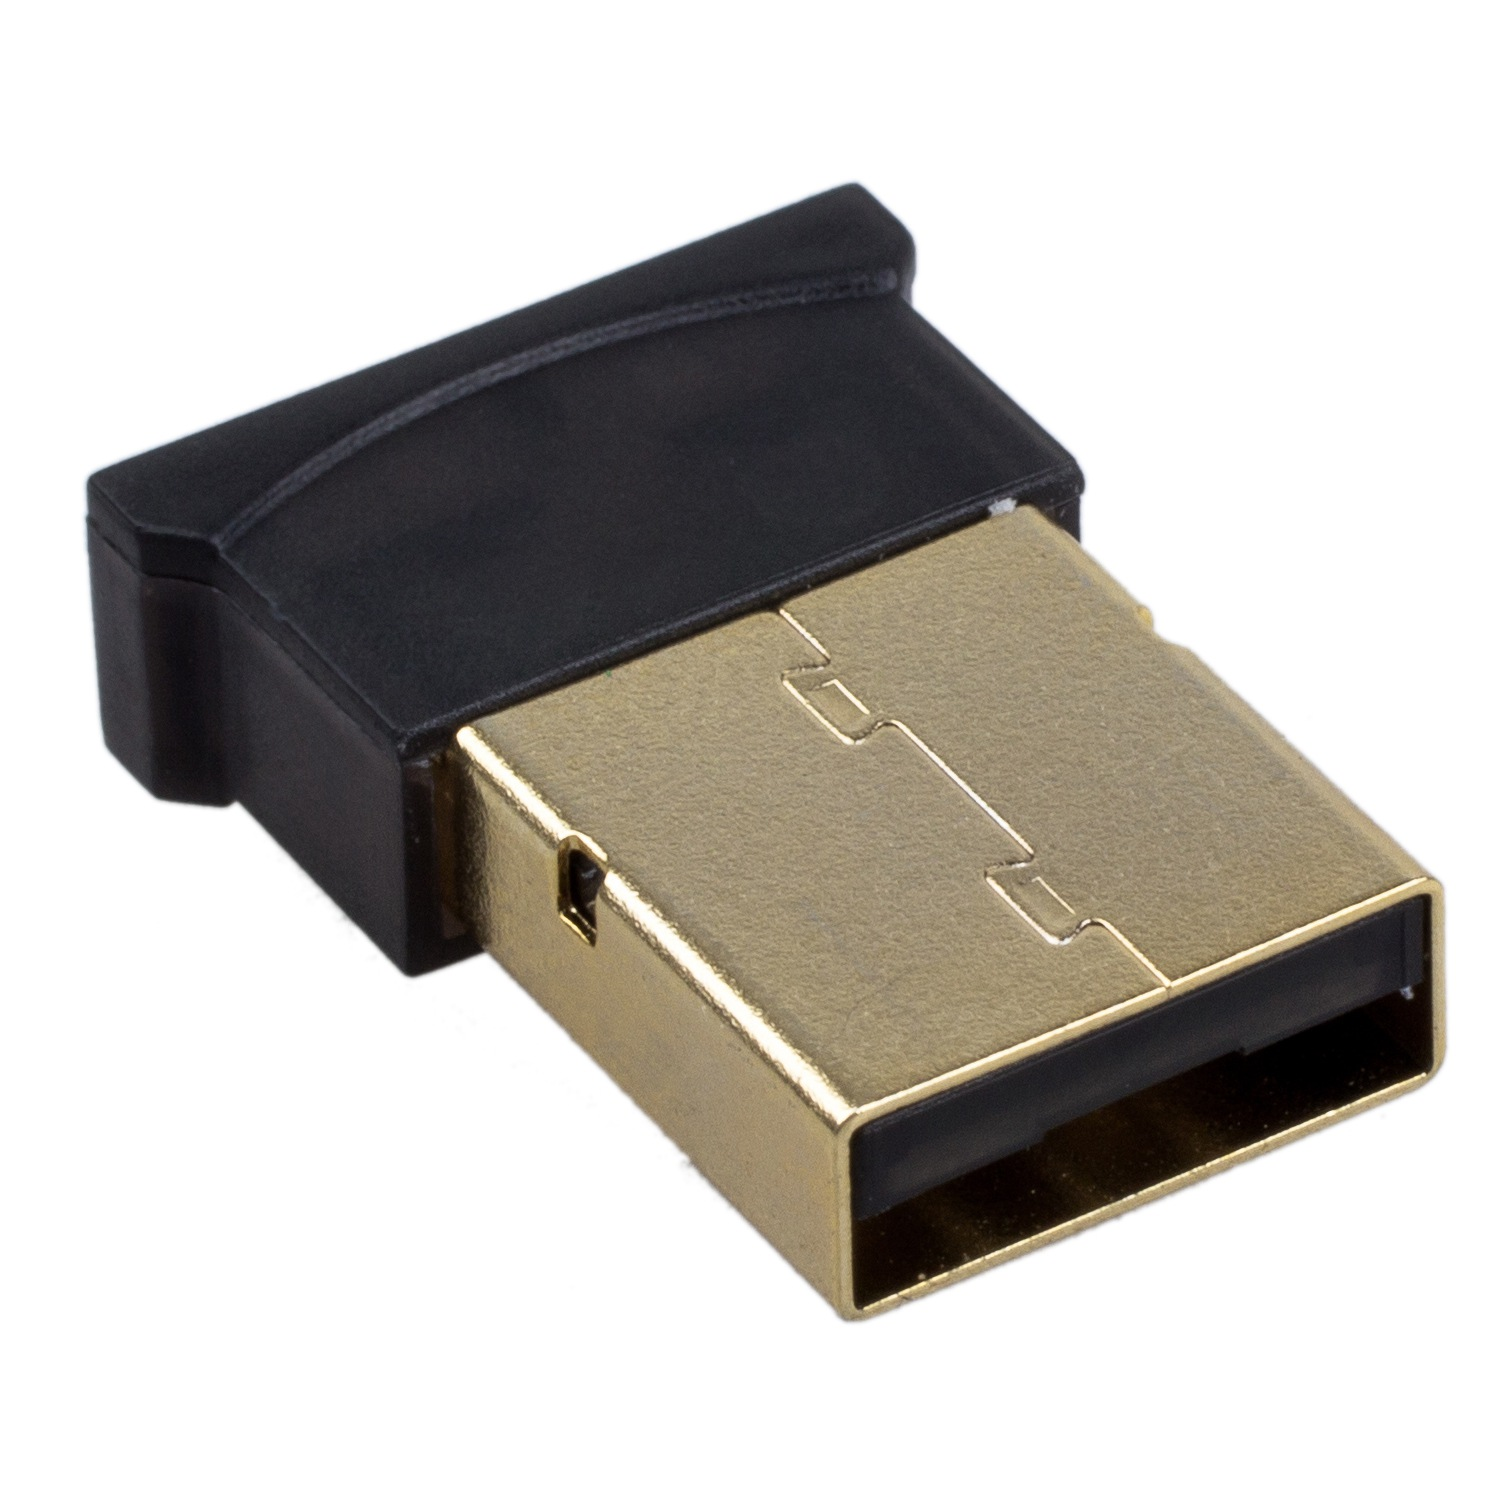 usb bluetooth v4 0 3 0 drahtloser mini adapter dongle fuer pc win 7 8 a1 ebay. Black Bedroom Furniture Sets. Home Design Ideas